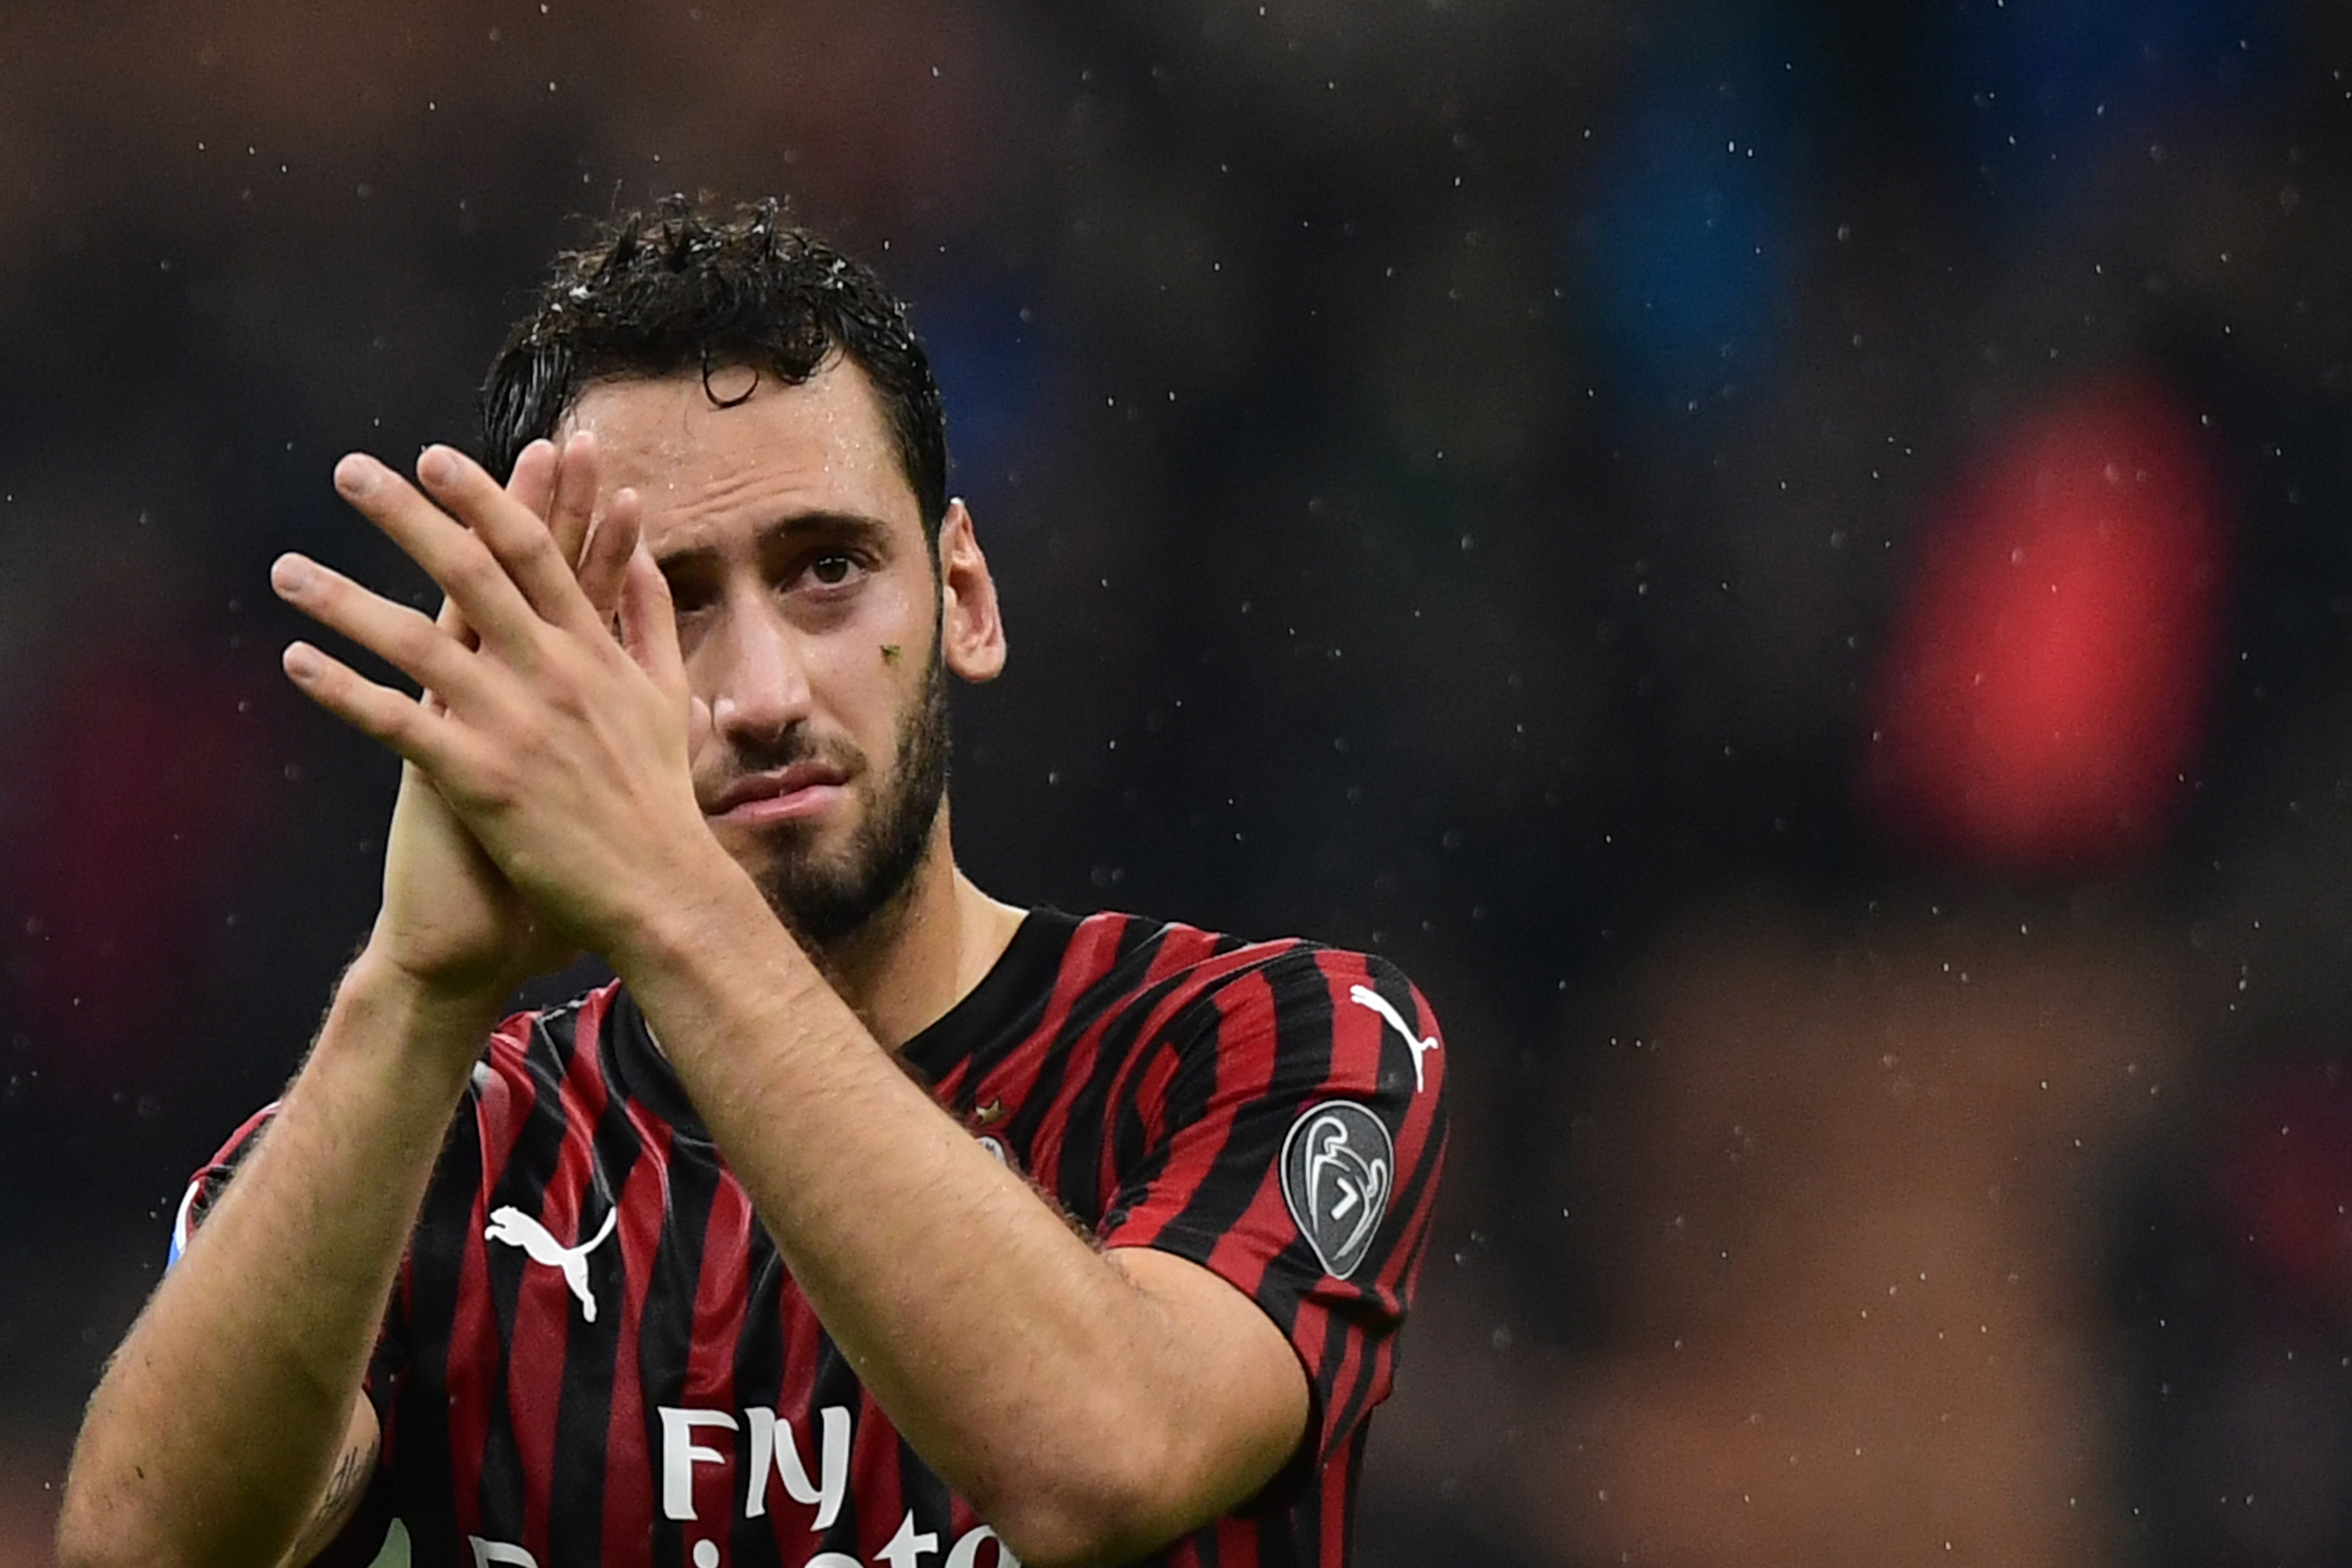 Calhanoglu's contract expires at the end of the season (Photo by Miguel Medina/AFP via Getty Images)